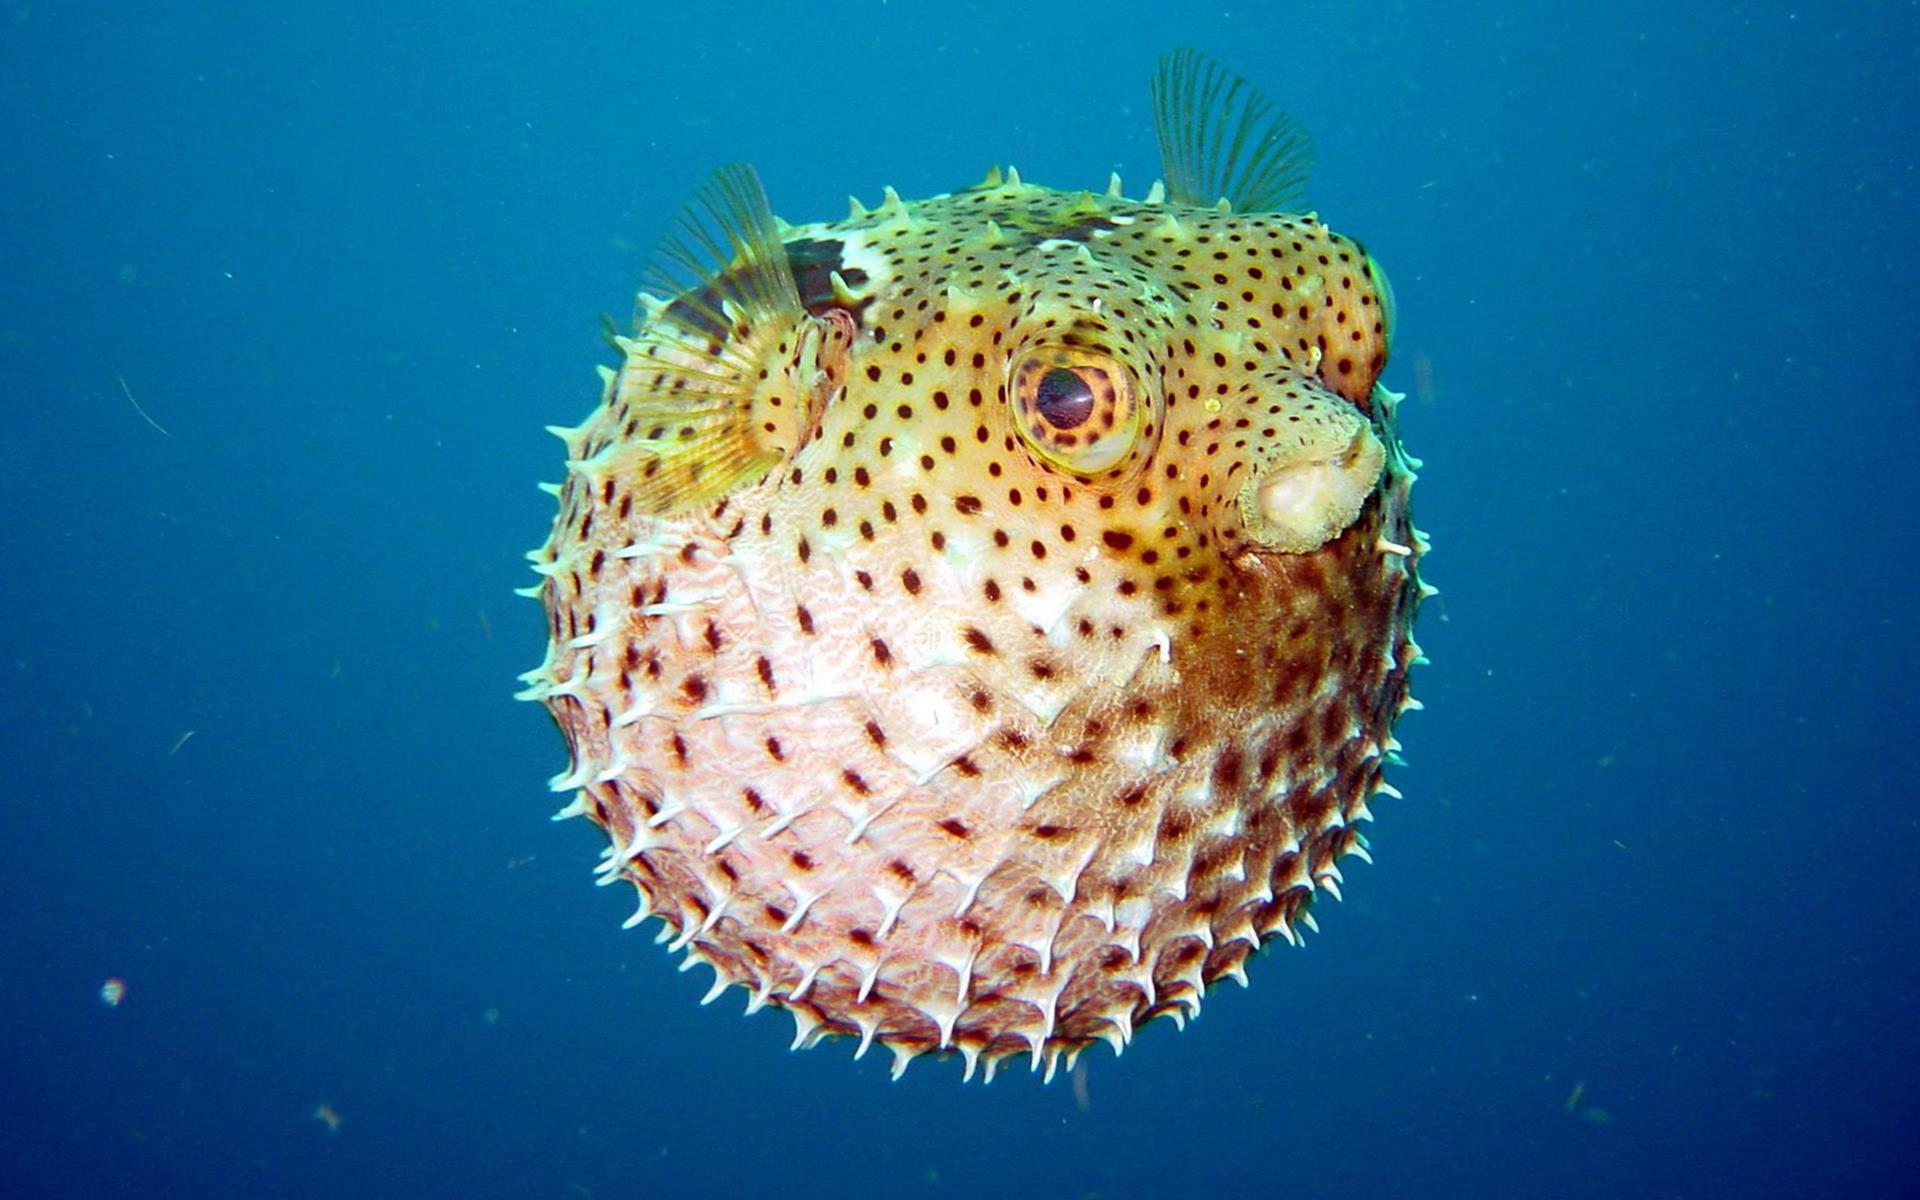 Images of Pufferfish | 1920x1200